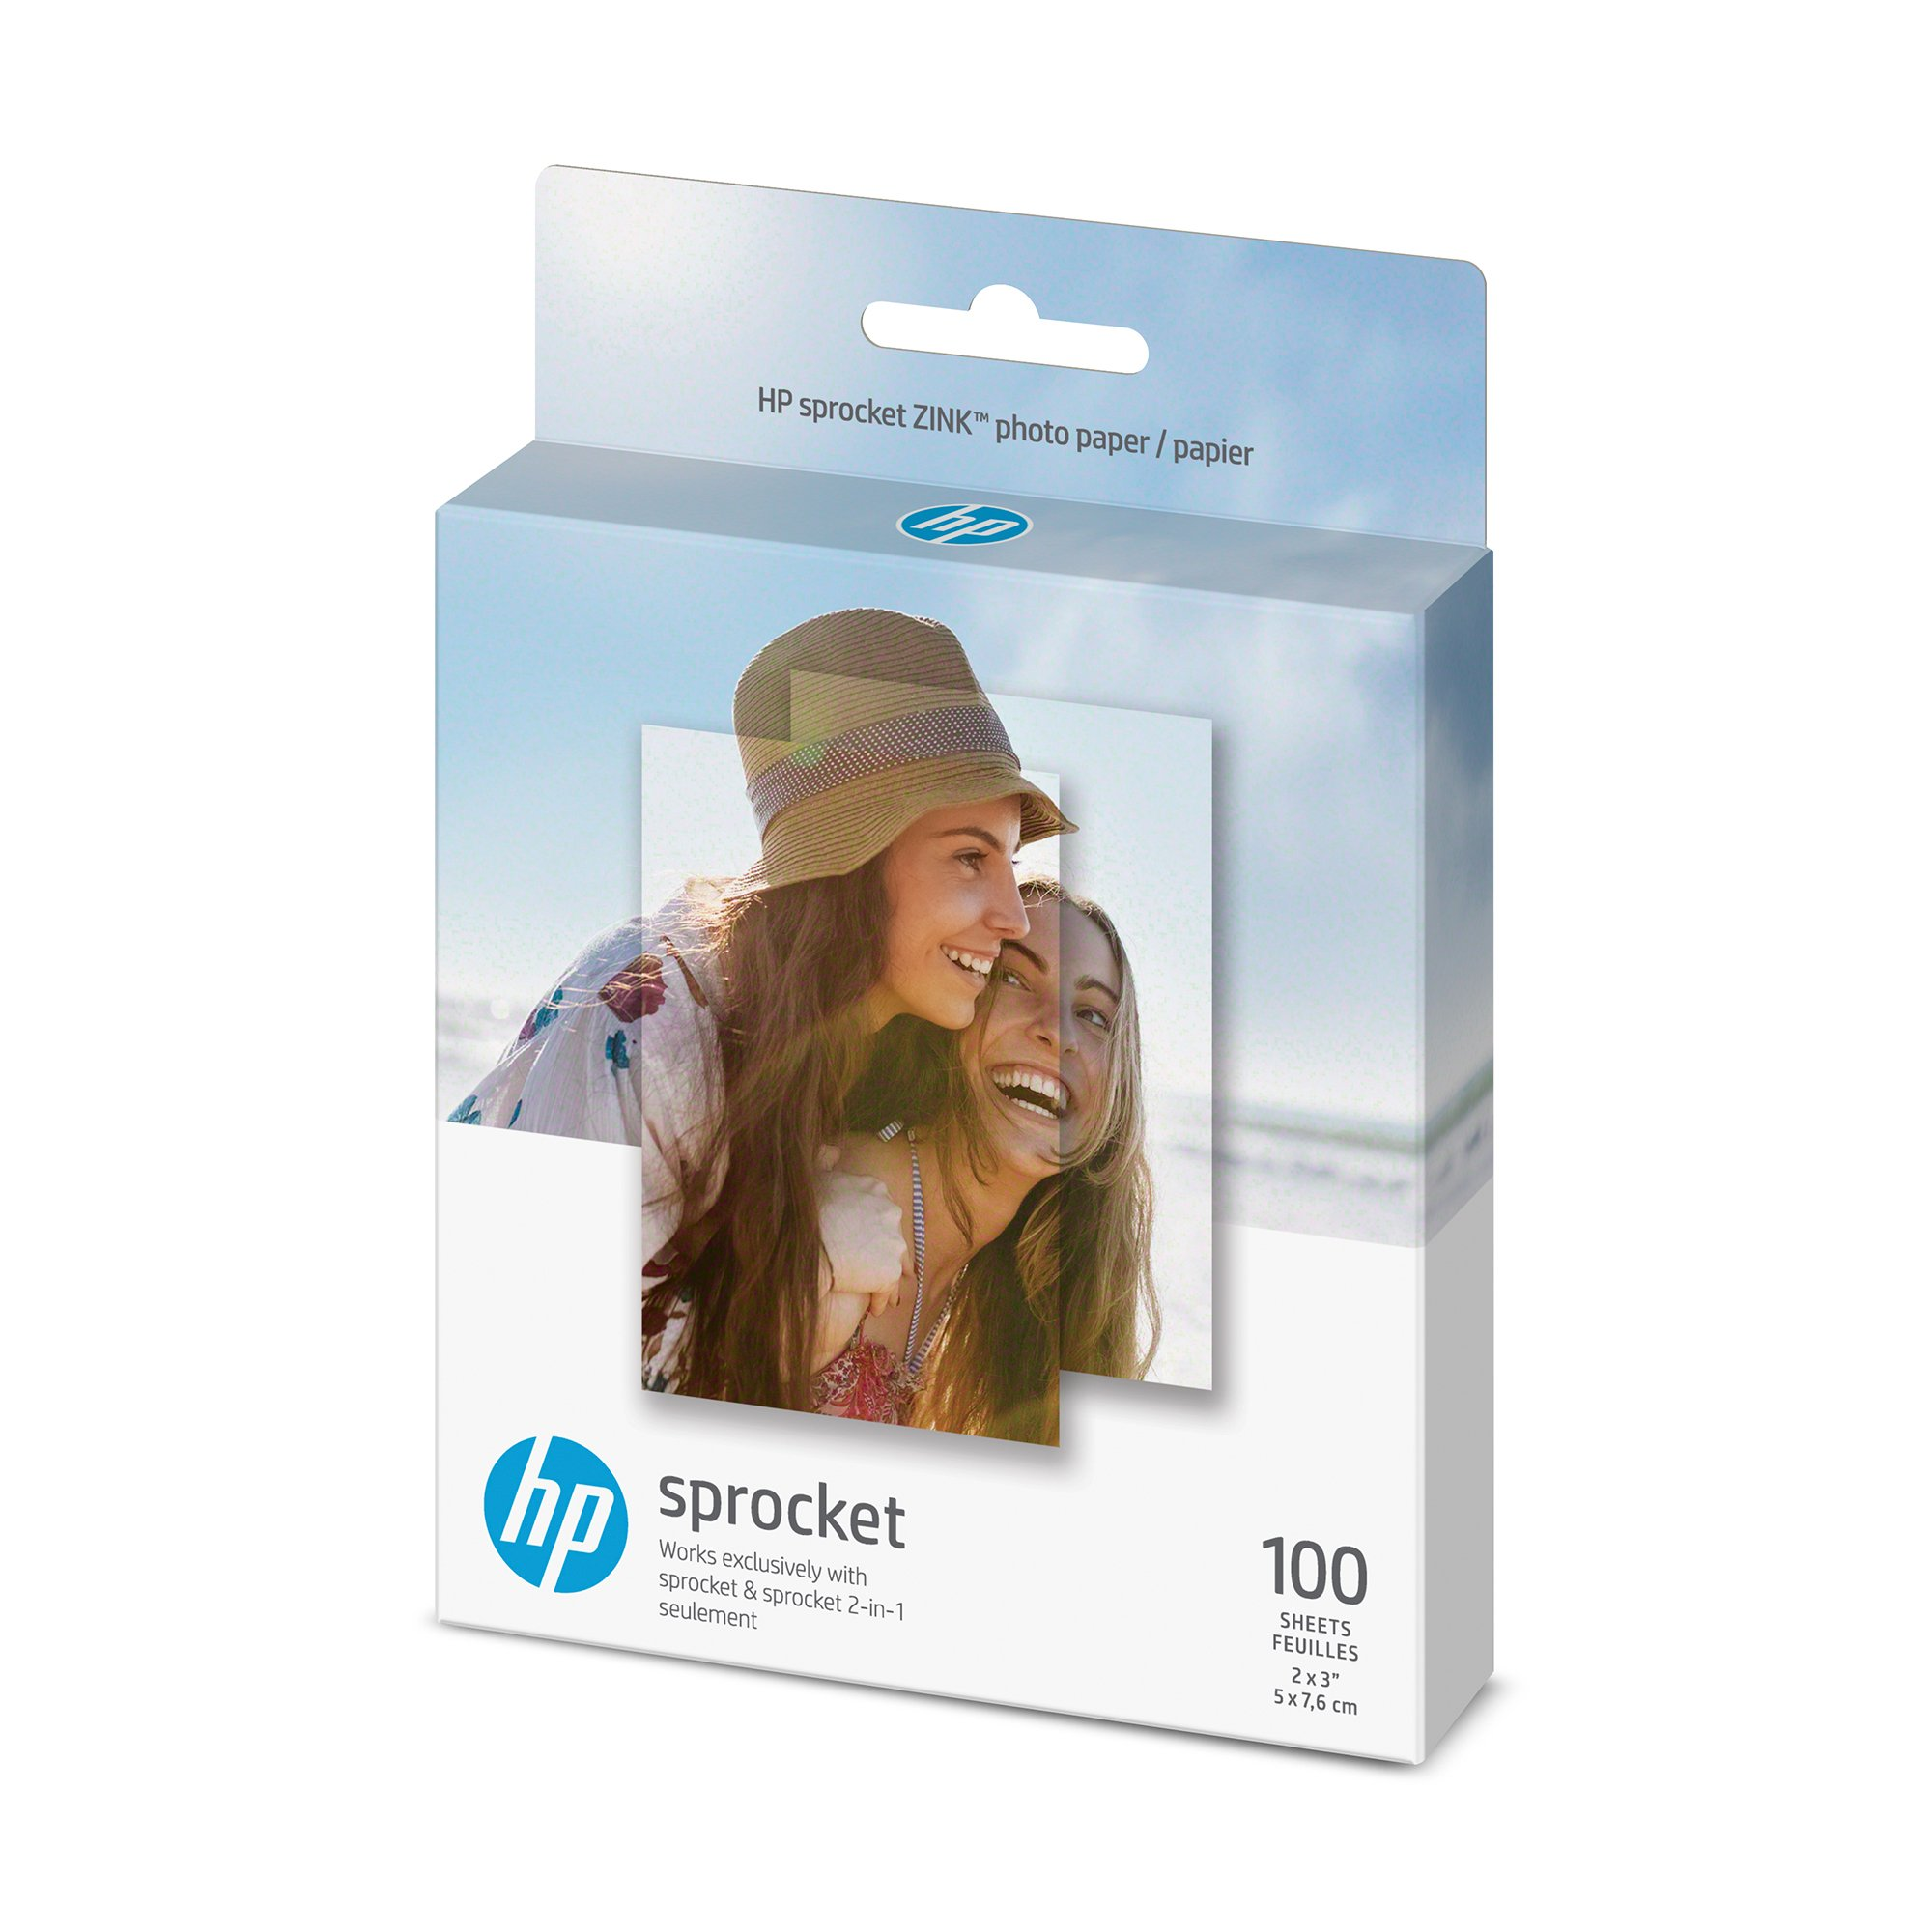 HP Sprocket Photo Paper, exclusively for Sprocket or Sprocket 2-in-1 Printer, (2x3-inch), sticky-backed 100 sheets (1DE40A) by HP